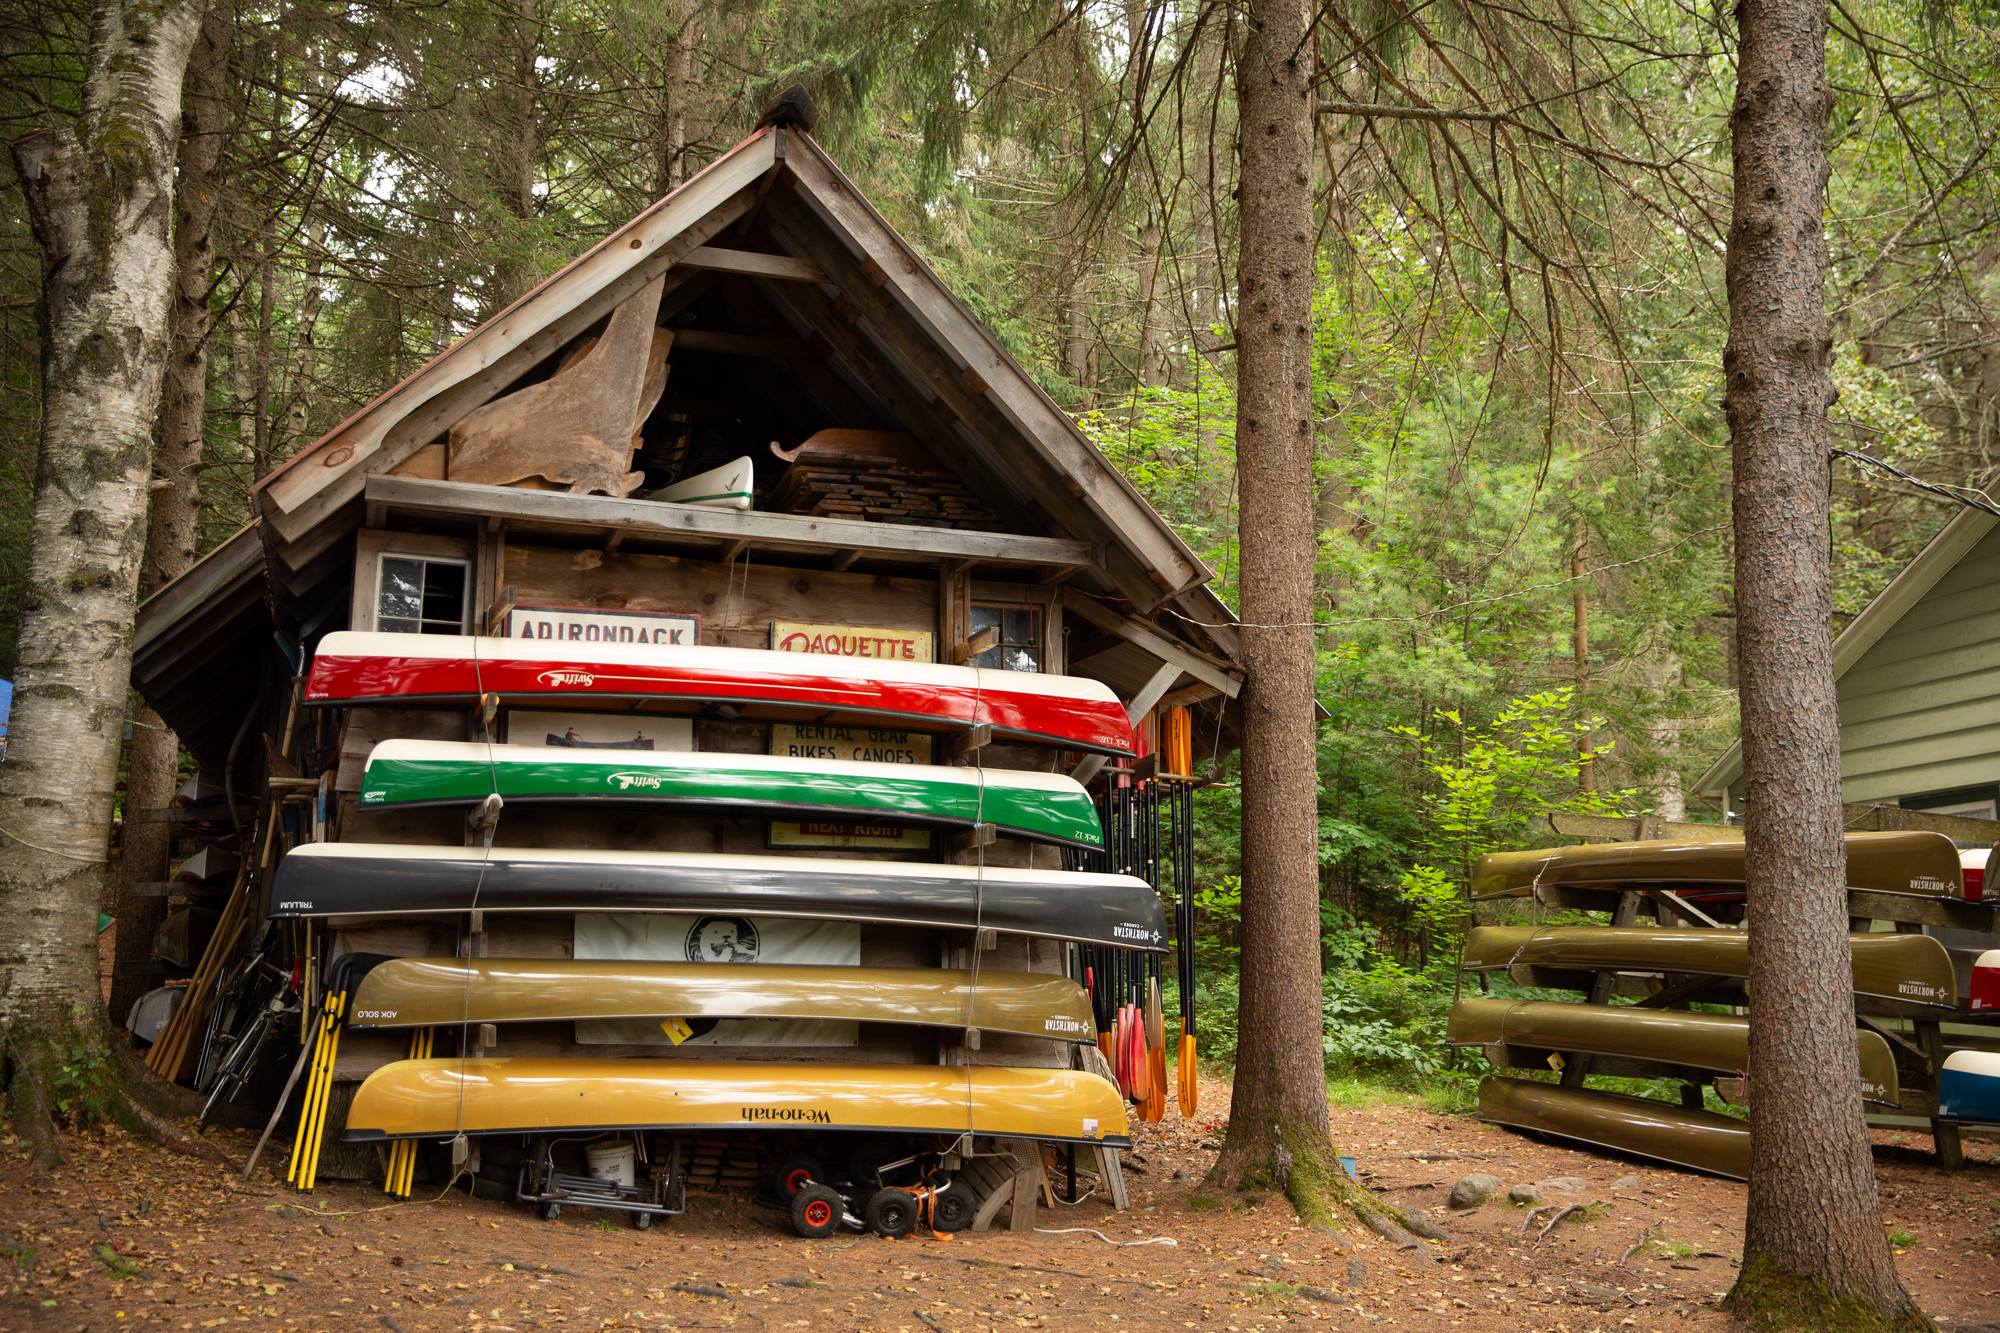 Canoe rentals stacked next to a wooden building.